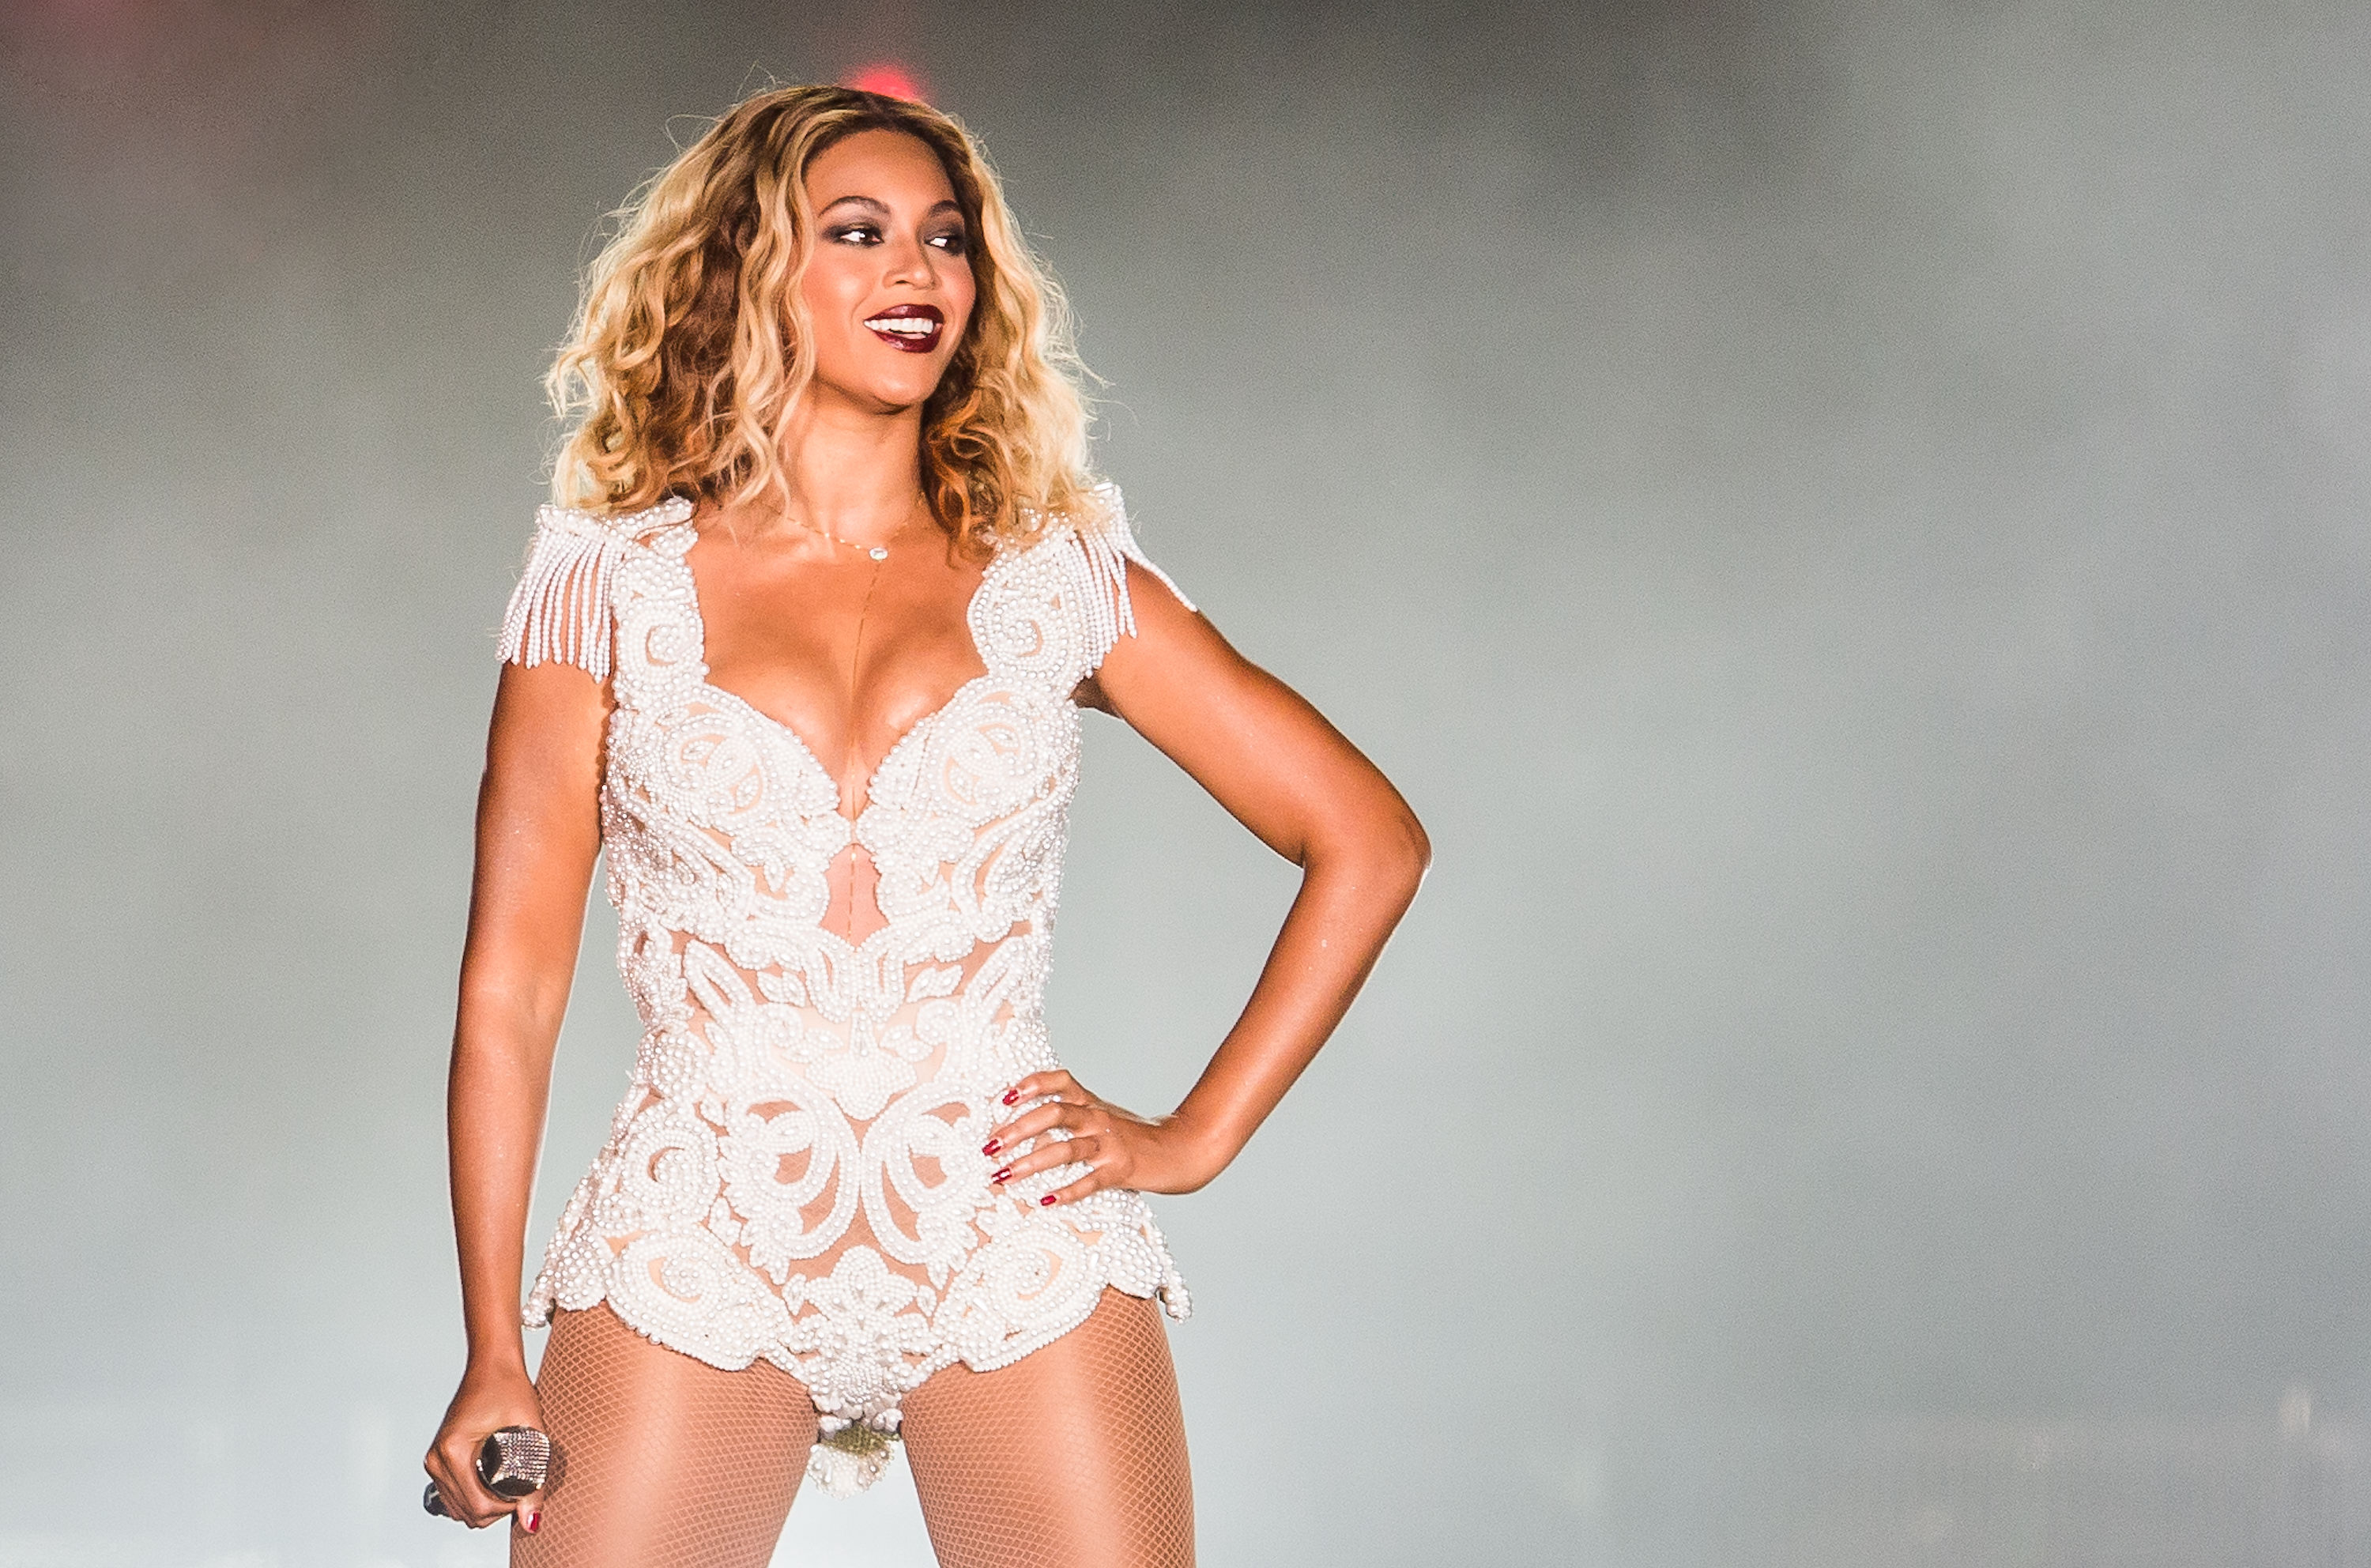 RIO DE JANEIRO, BRAZIL - SEPTEMBER 13, 2013: Singer Beyonce performs on stage during a concert in the Rock in Rio Festival